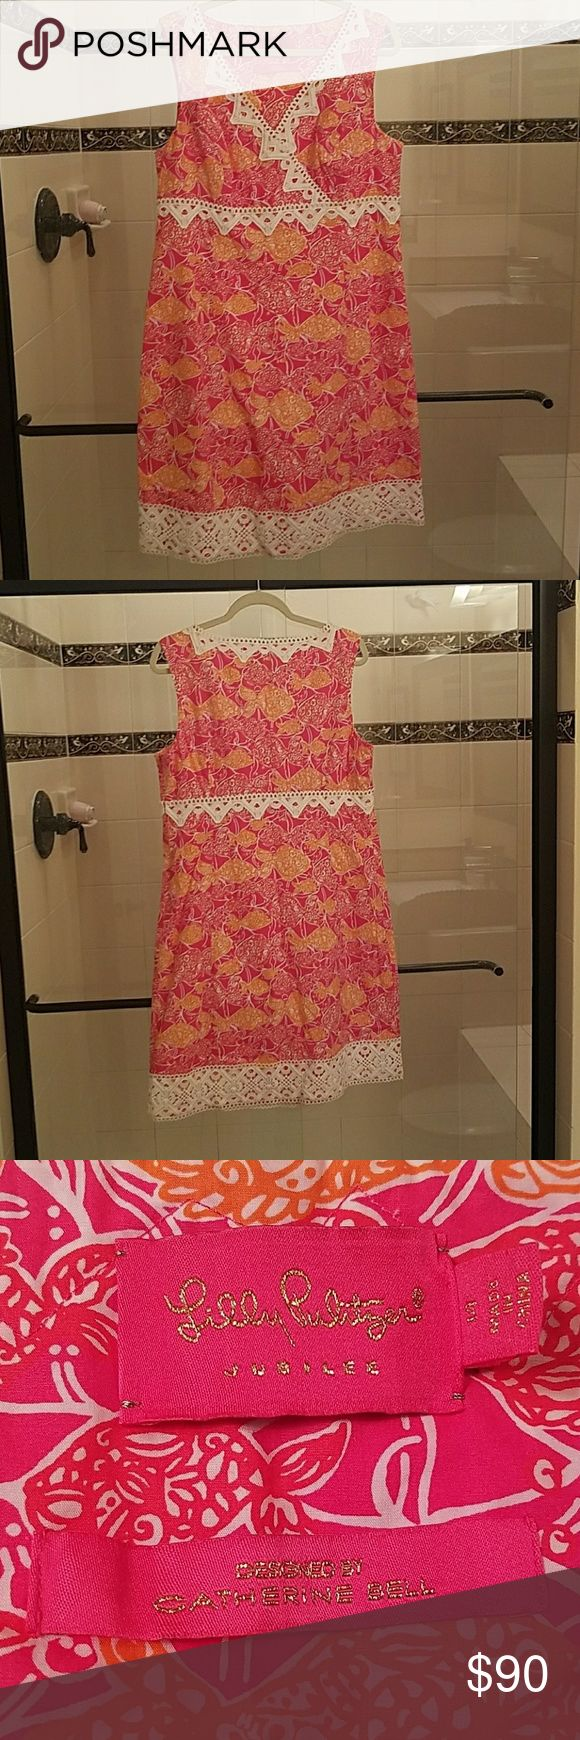 Lily Pulitzer Katherin Bell Dress Size 14 Orange and pink fish with lace. Never worn Lilly Pulitzer Dresses Midi